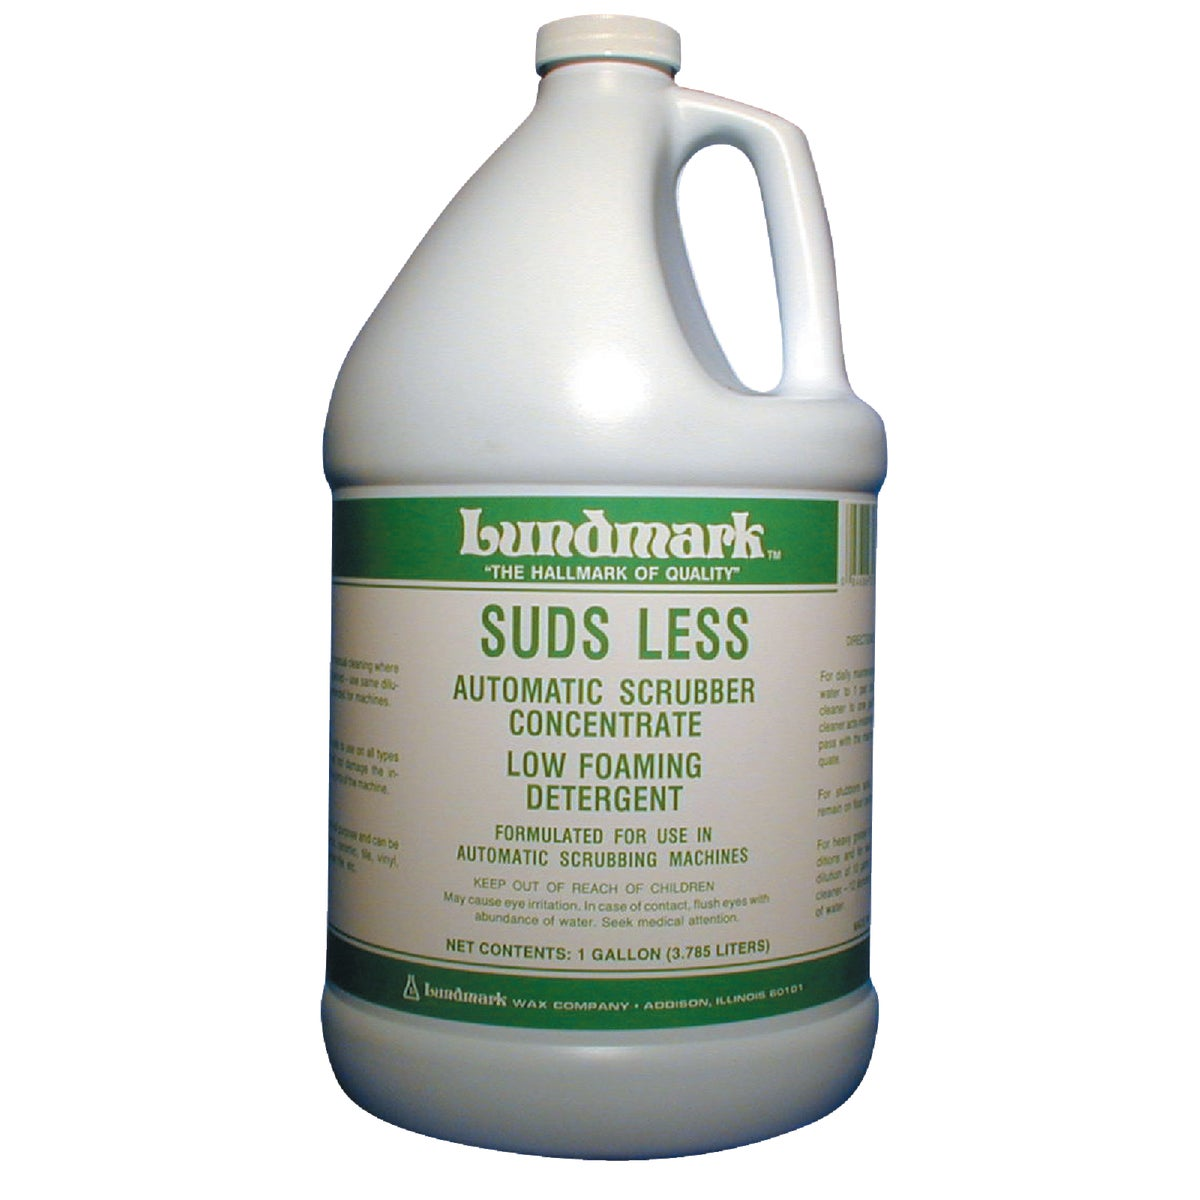 GALLON SUDS LESS CLEANER - 3278G01-4 by Lundmark Wax Co